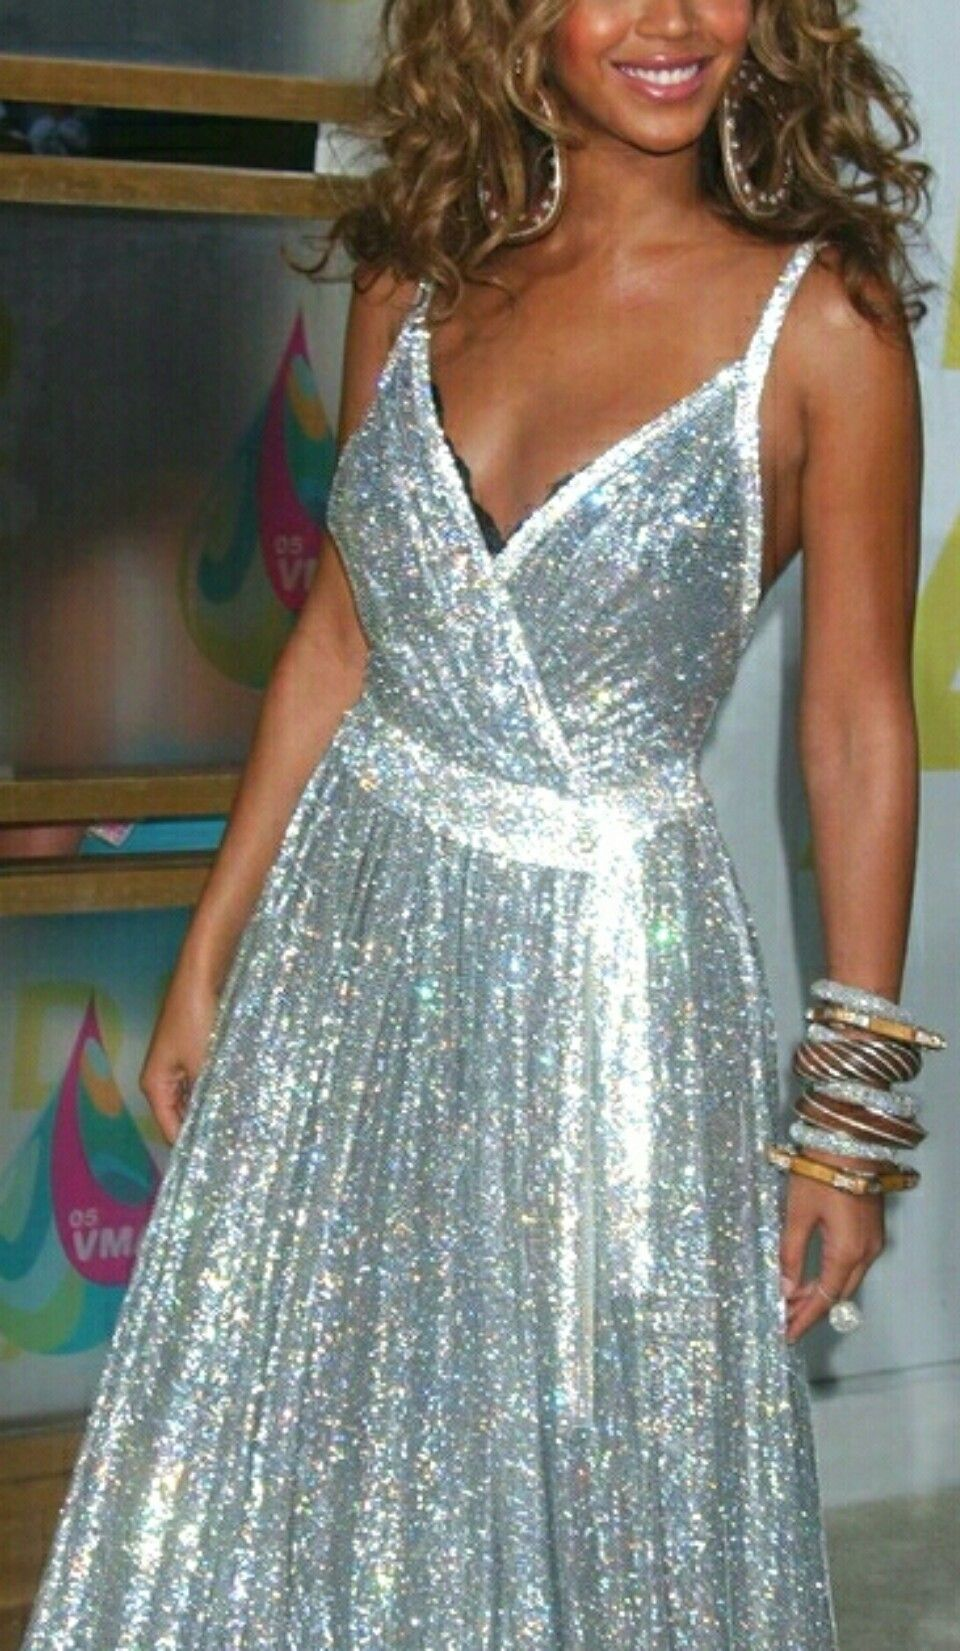 Beyoncé vma 2005 | dress | Pinterest